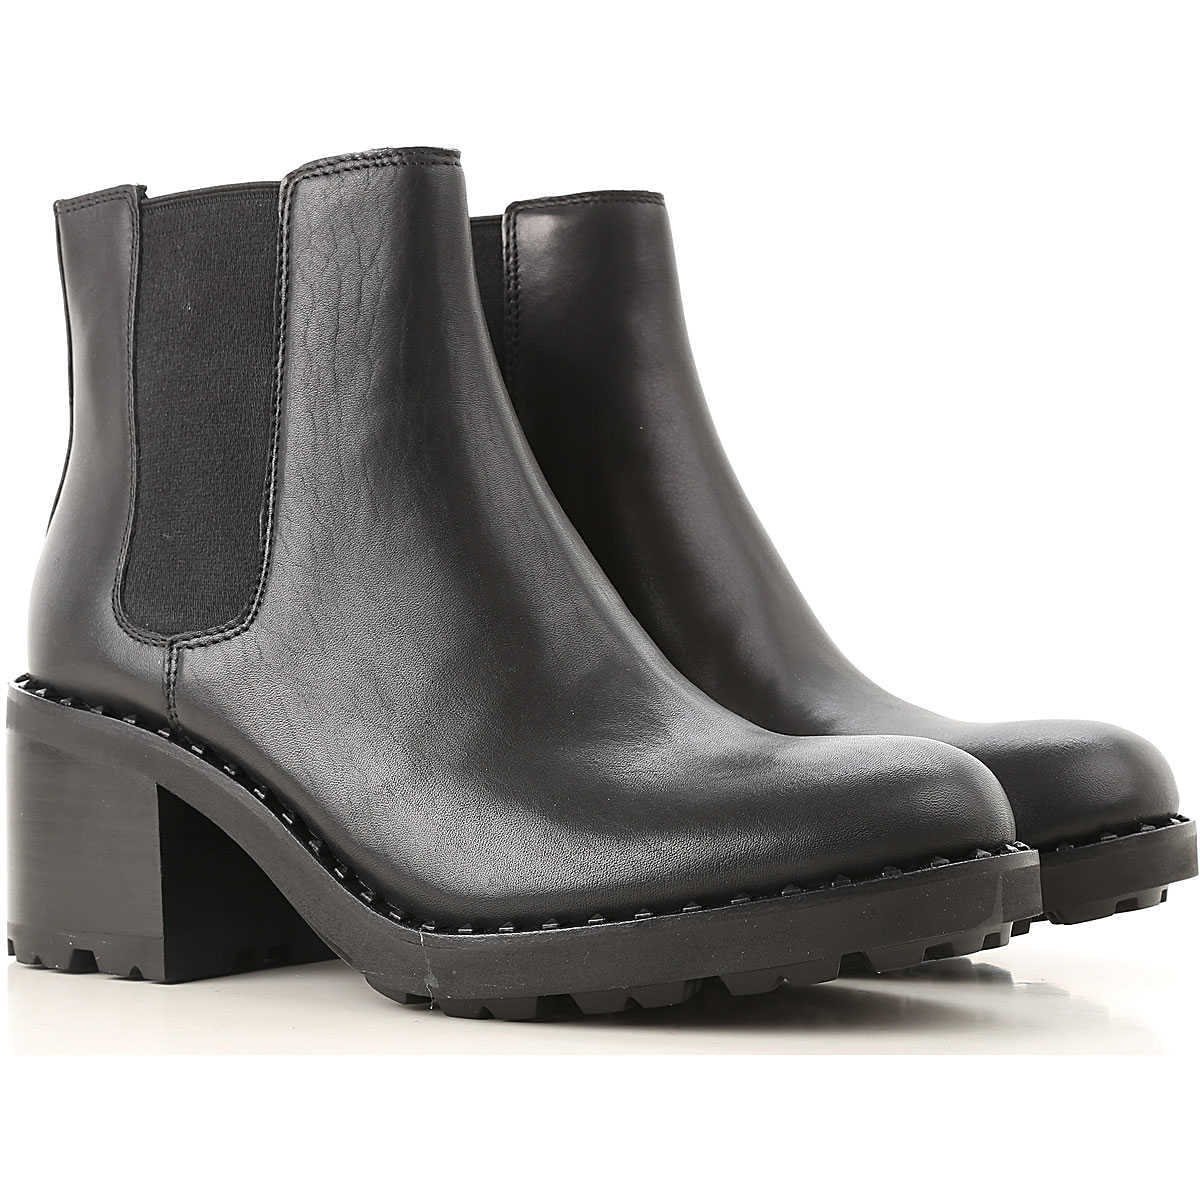 Ash Boots for Women 3.5 4.5 5.5 6.5 7.5 Booties UK - GOOFASH